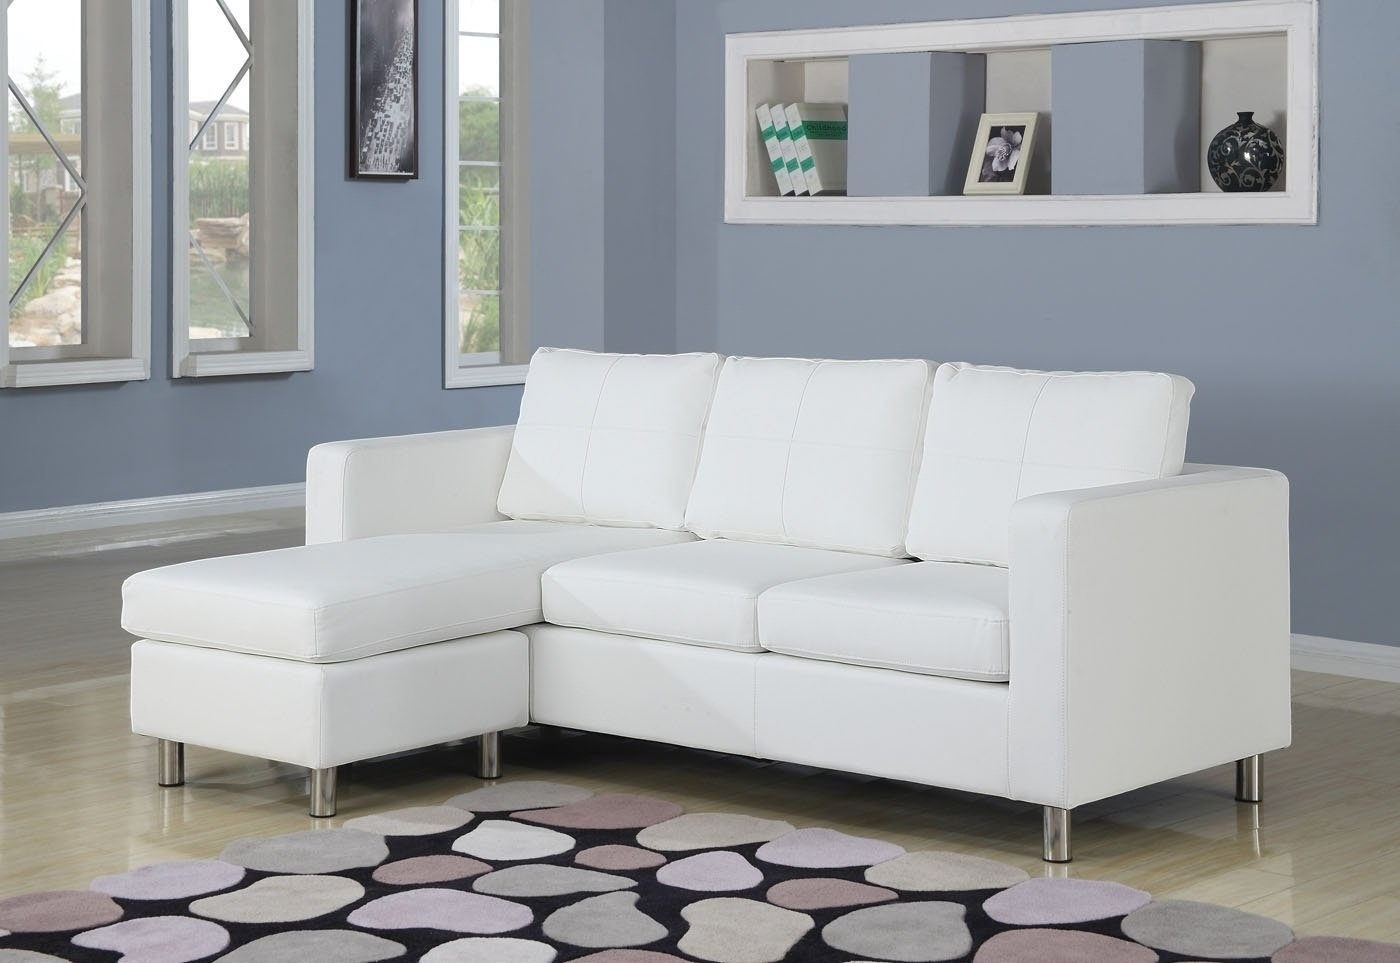 Sectional Sofas In Small Spaces In Most Recently Released Sofa : Small Reclining Sectional Sofa Small Double Chaise Sofa (View 19 of 20)